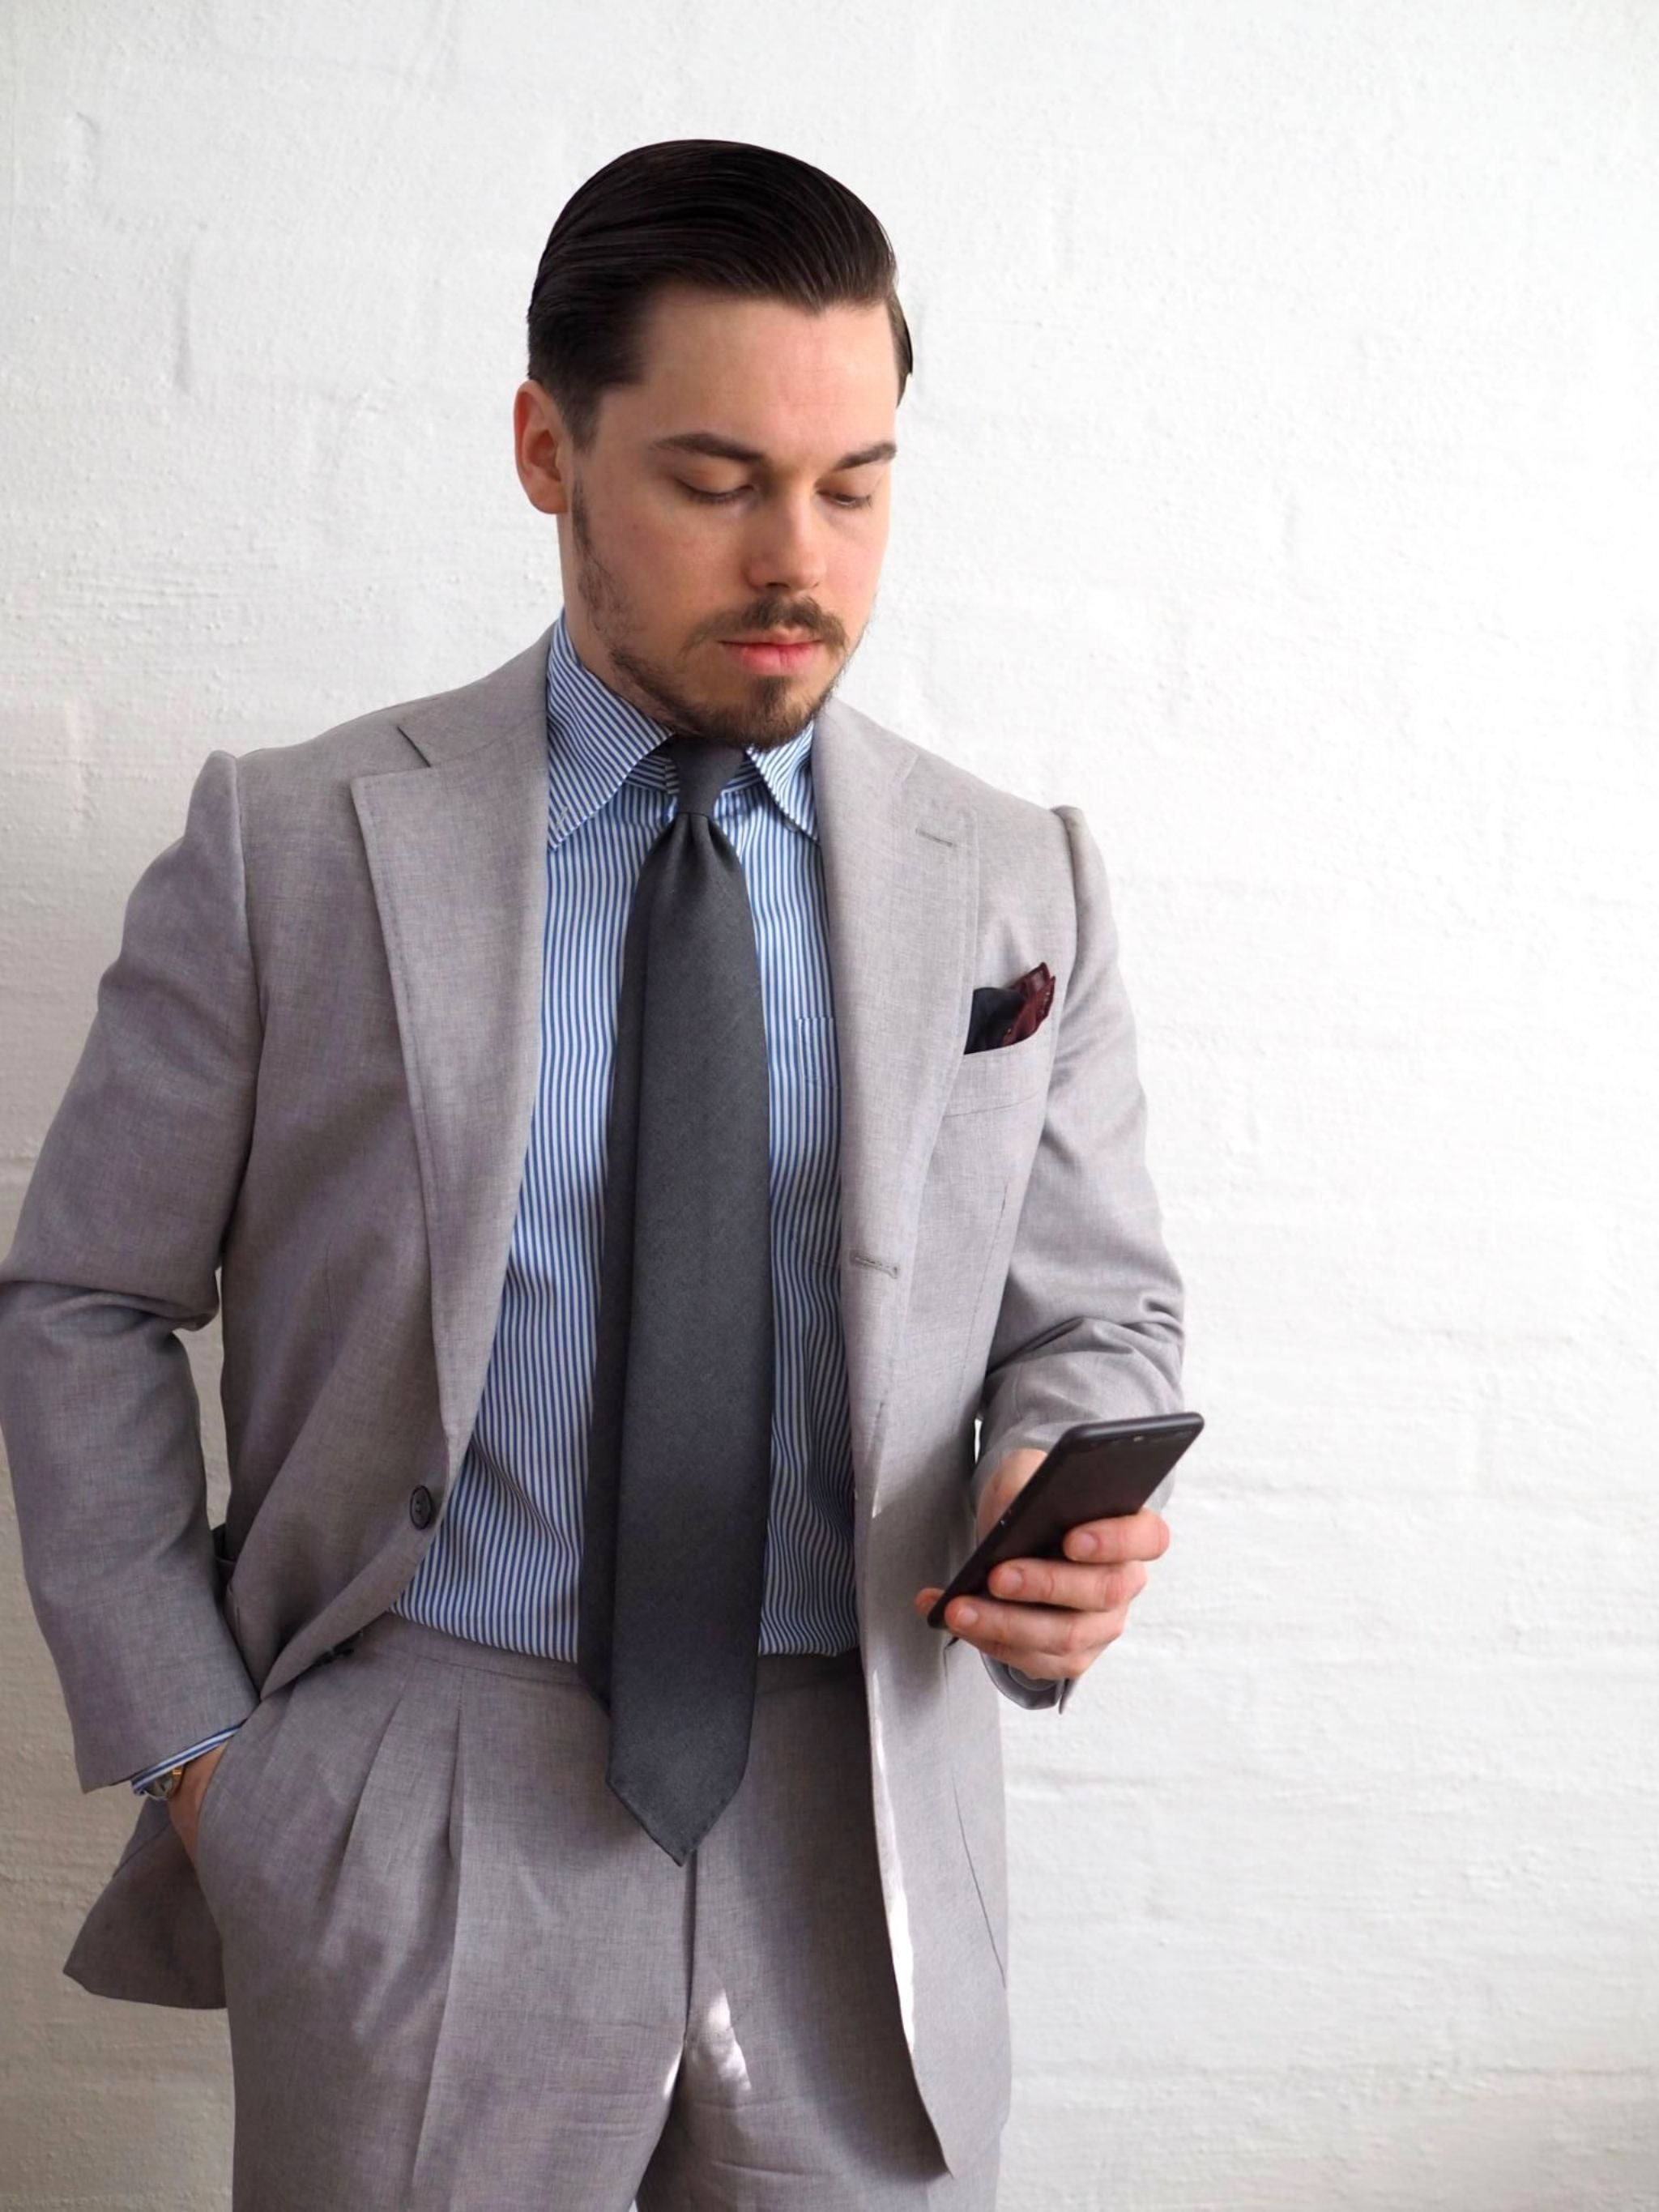 Favorite suits - light gray wool suit with gray wool tie